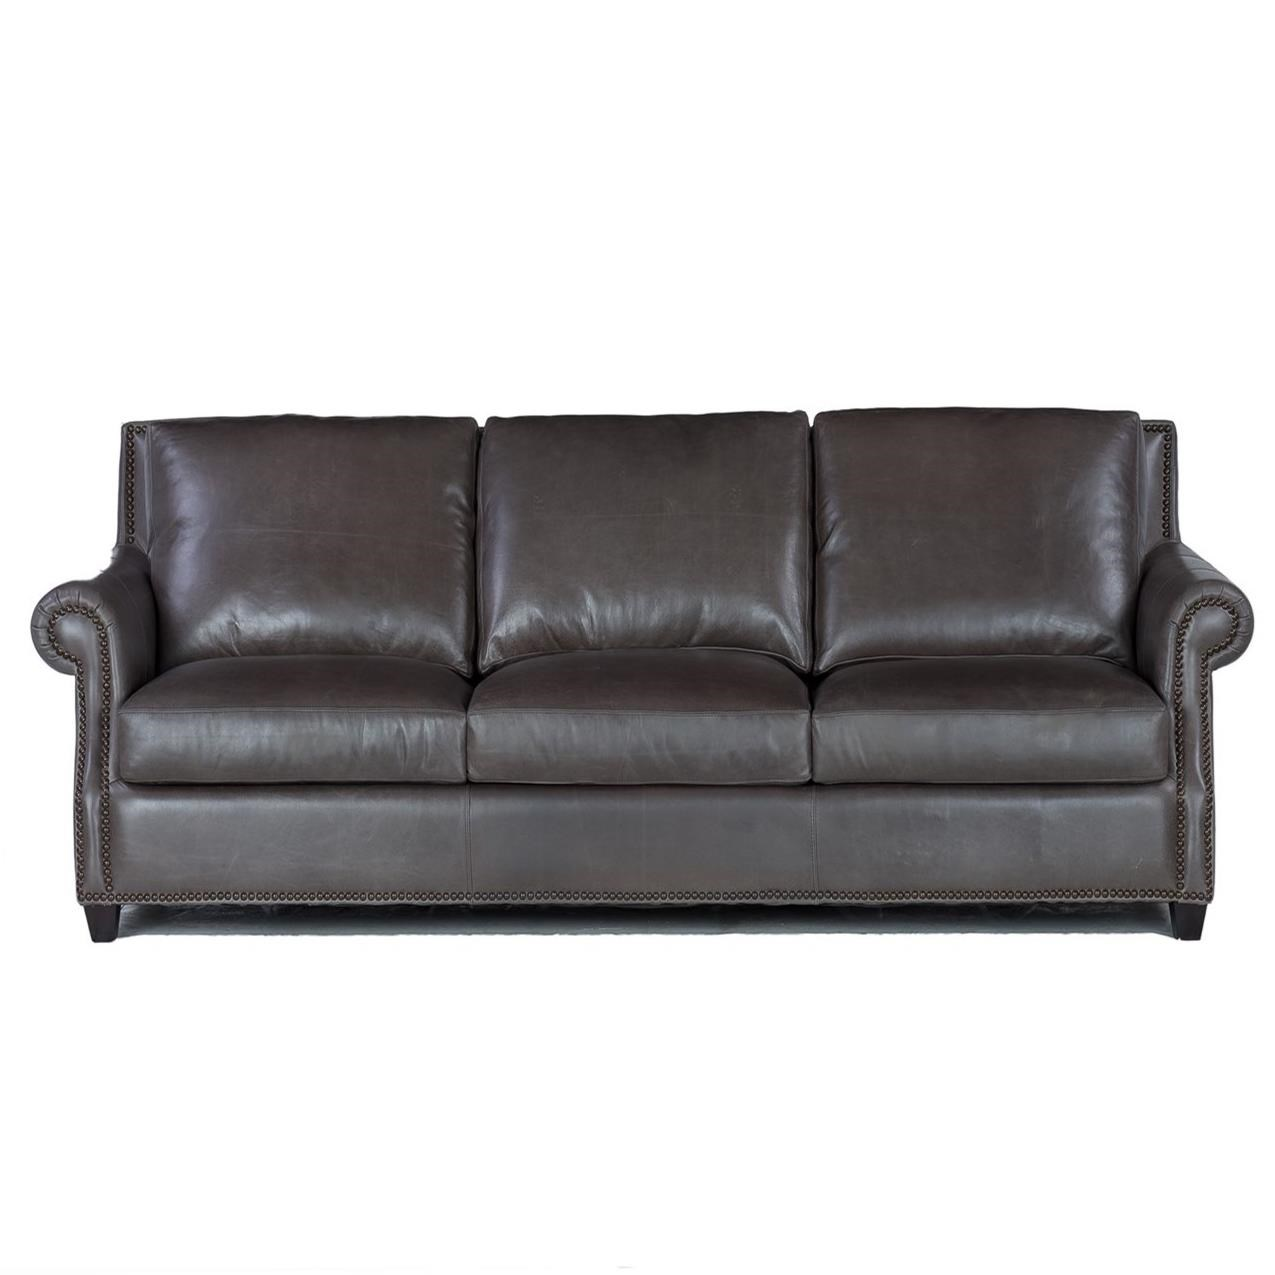 Fantastic Leather Sofa By Usa Premium Leather Wolf Furniture Ocoug Best Dining Table And Chair Ideas Images Ocougorg